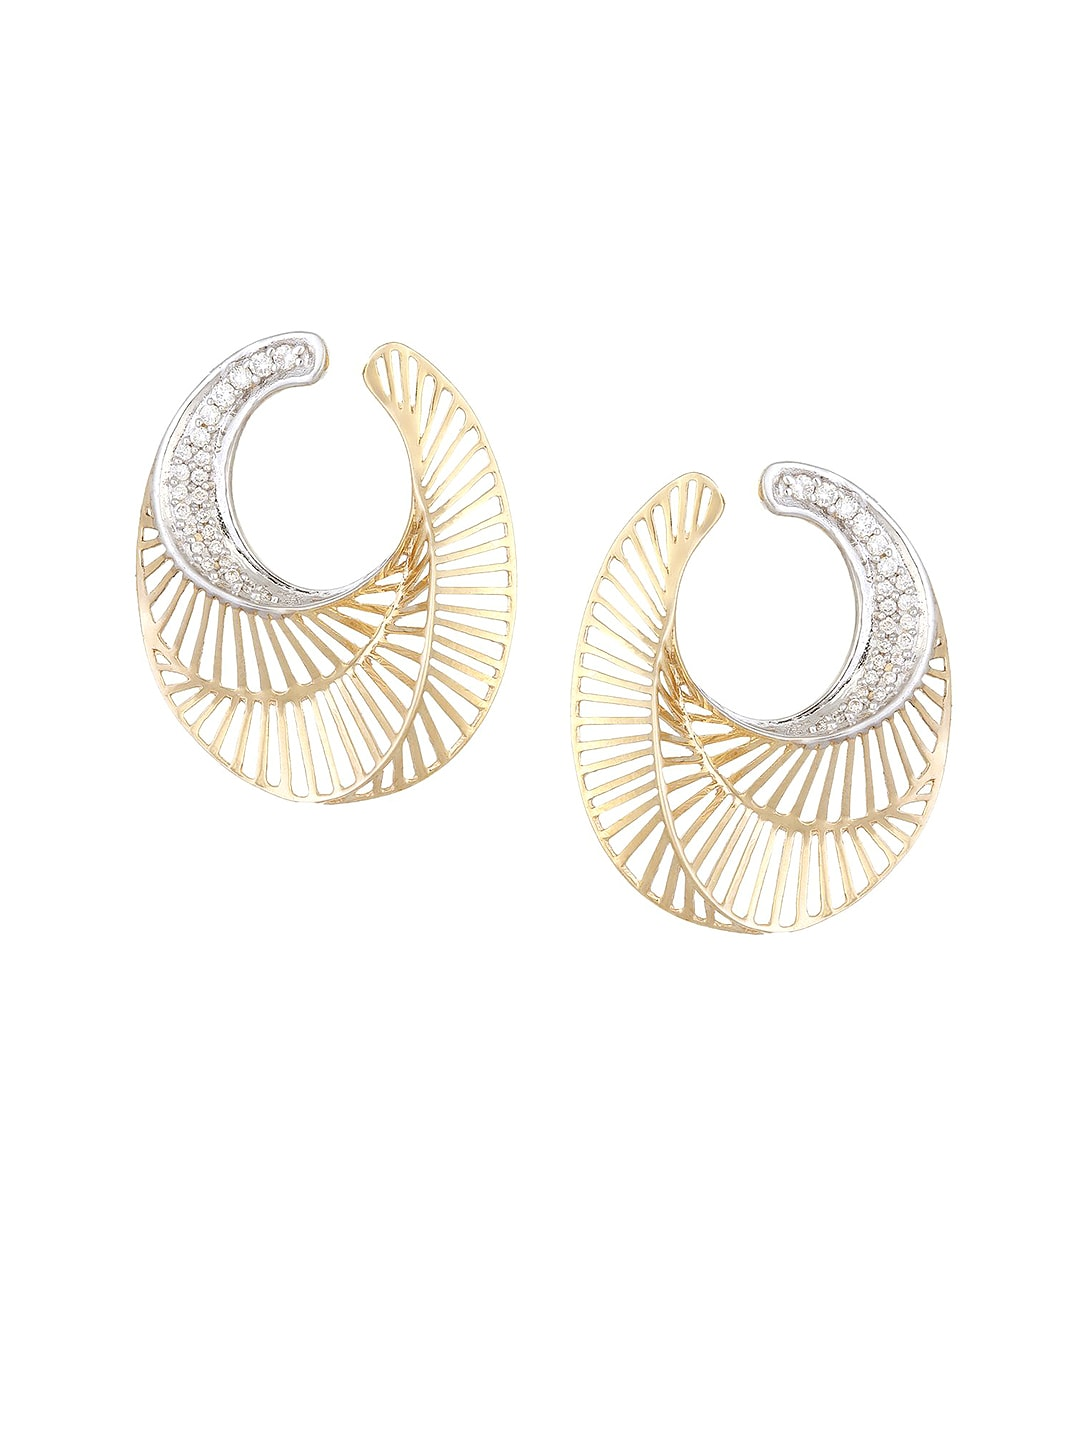 Tanishq Diamond Jewellery Earrings Online In India